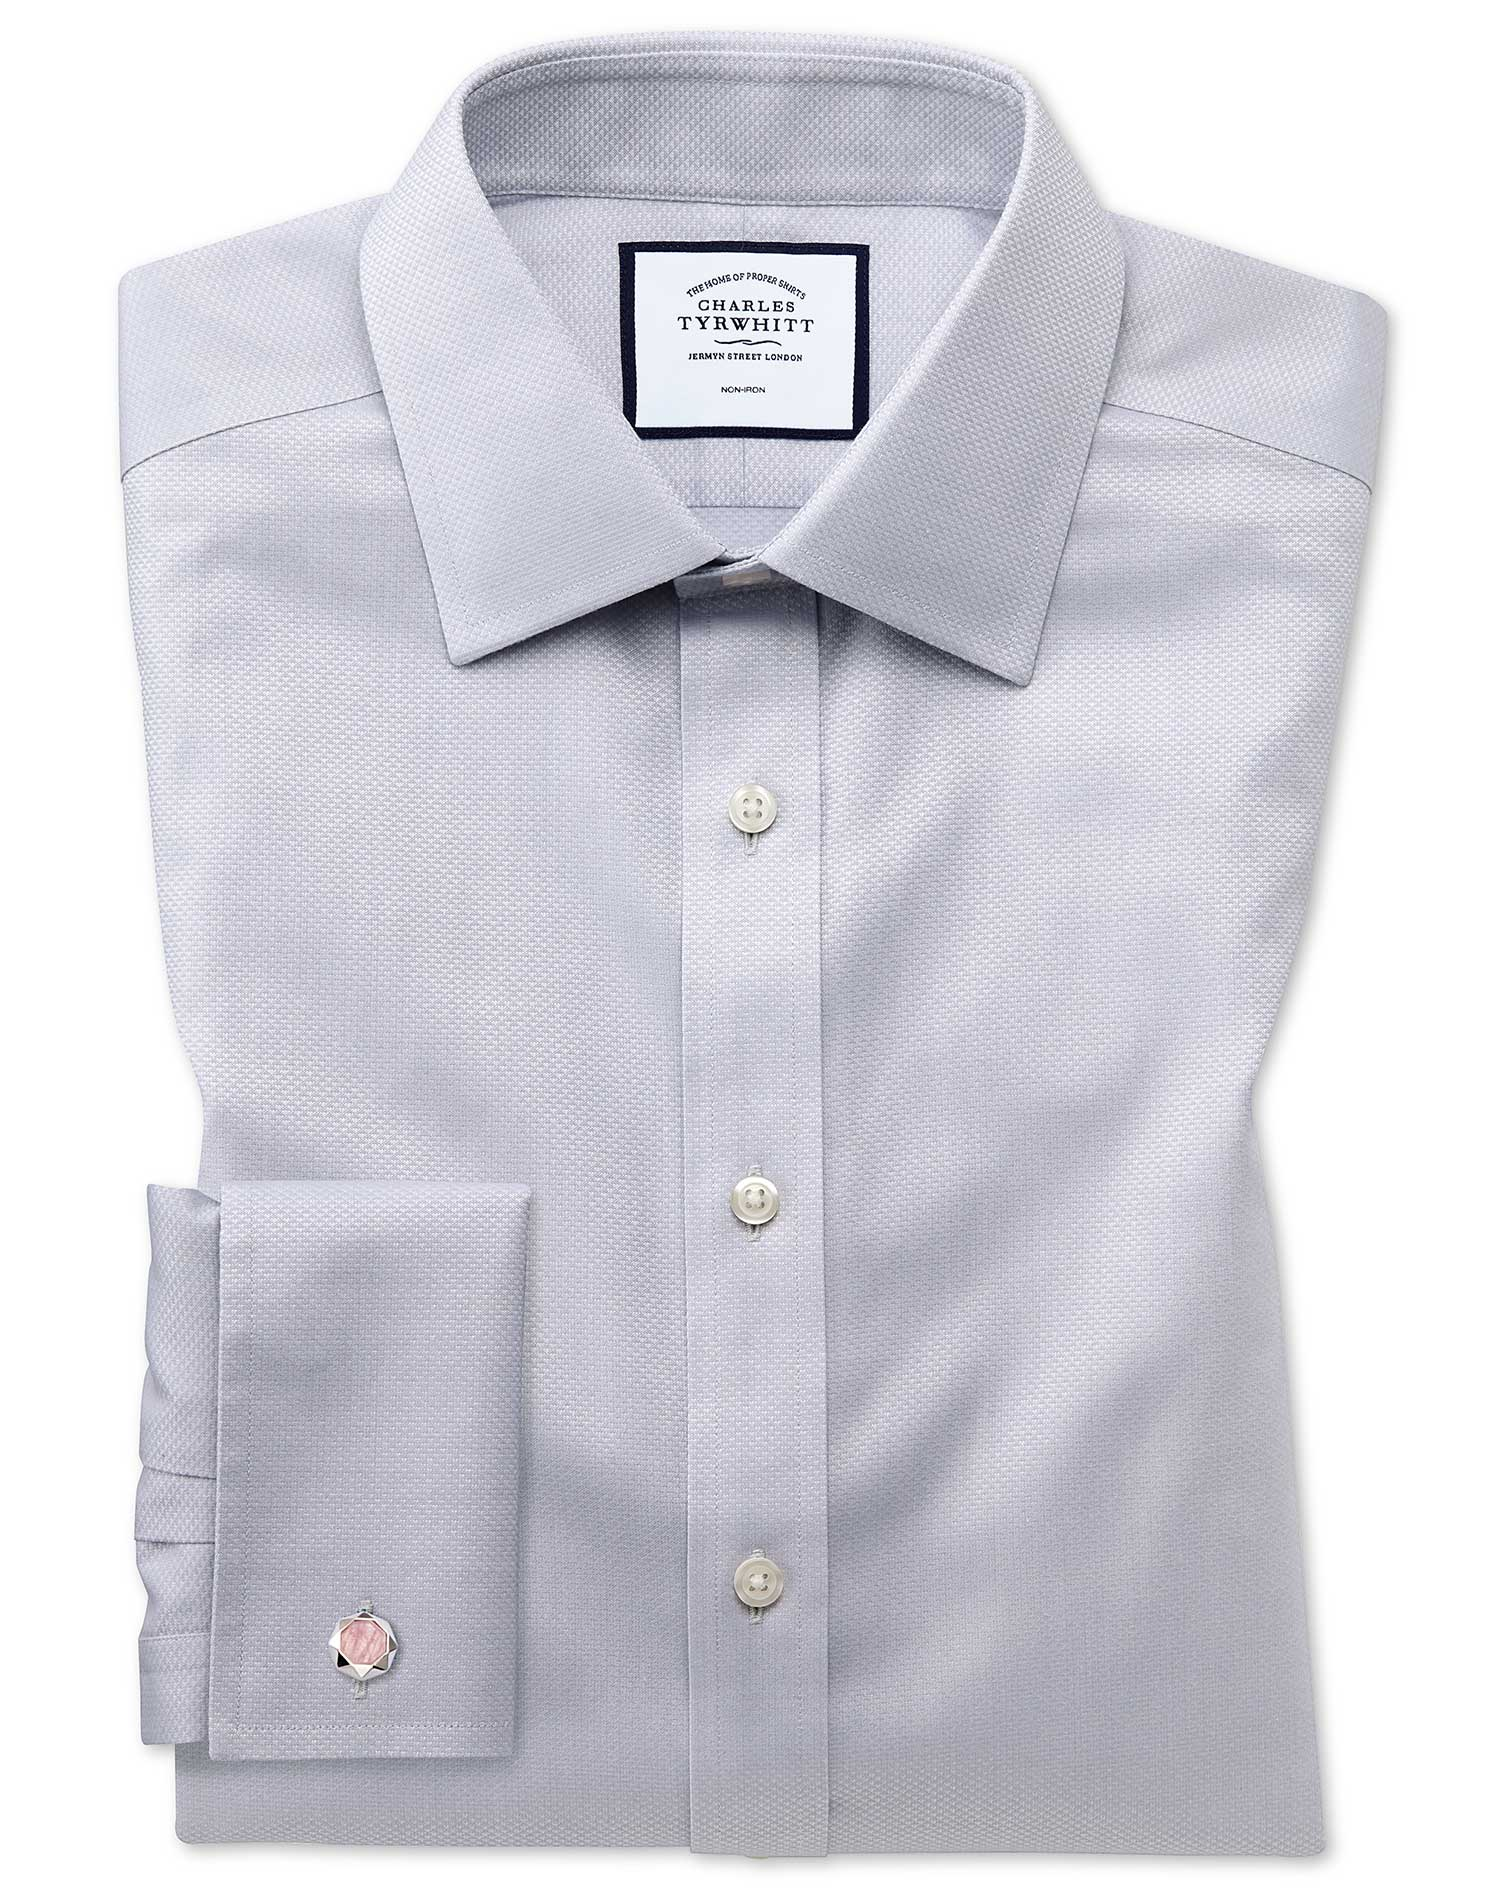 Slim Fit Non-Iron Grey Triangle Weave Cotton Formal Shirt Single Cuff Size 17/37 by Charles Tyrwhitt